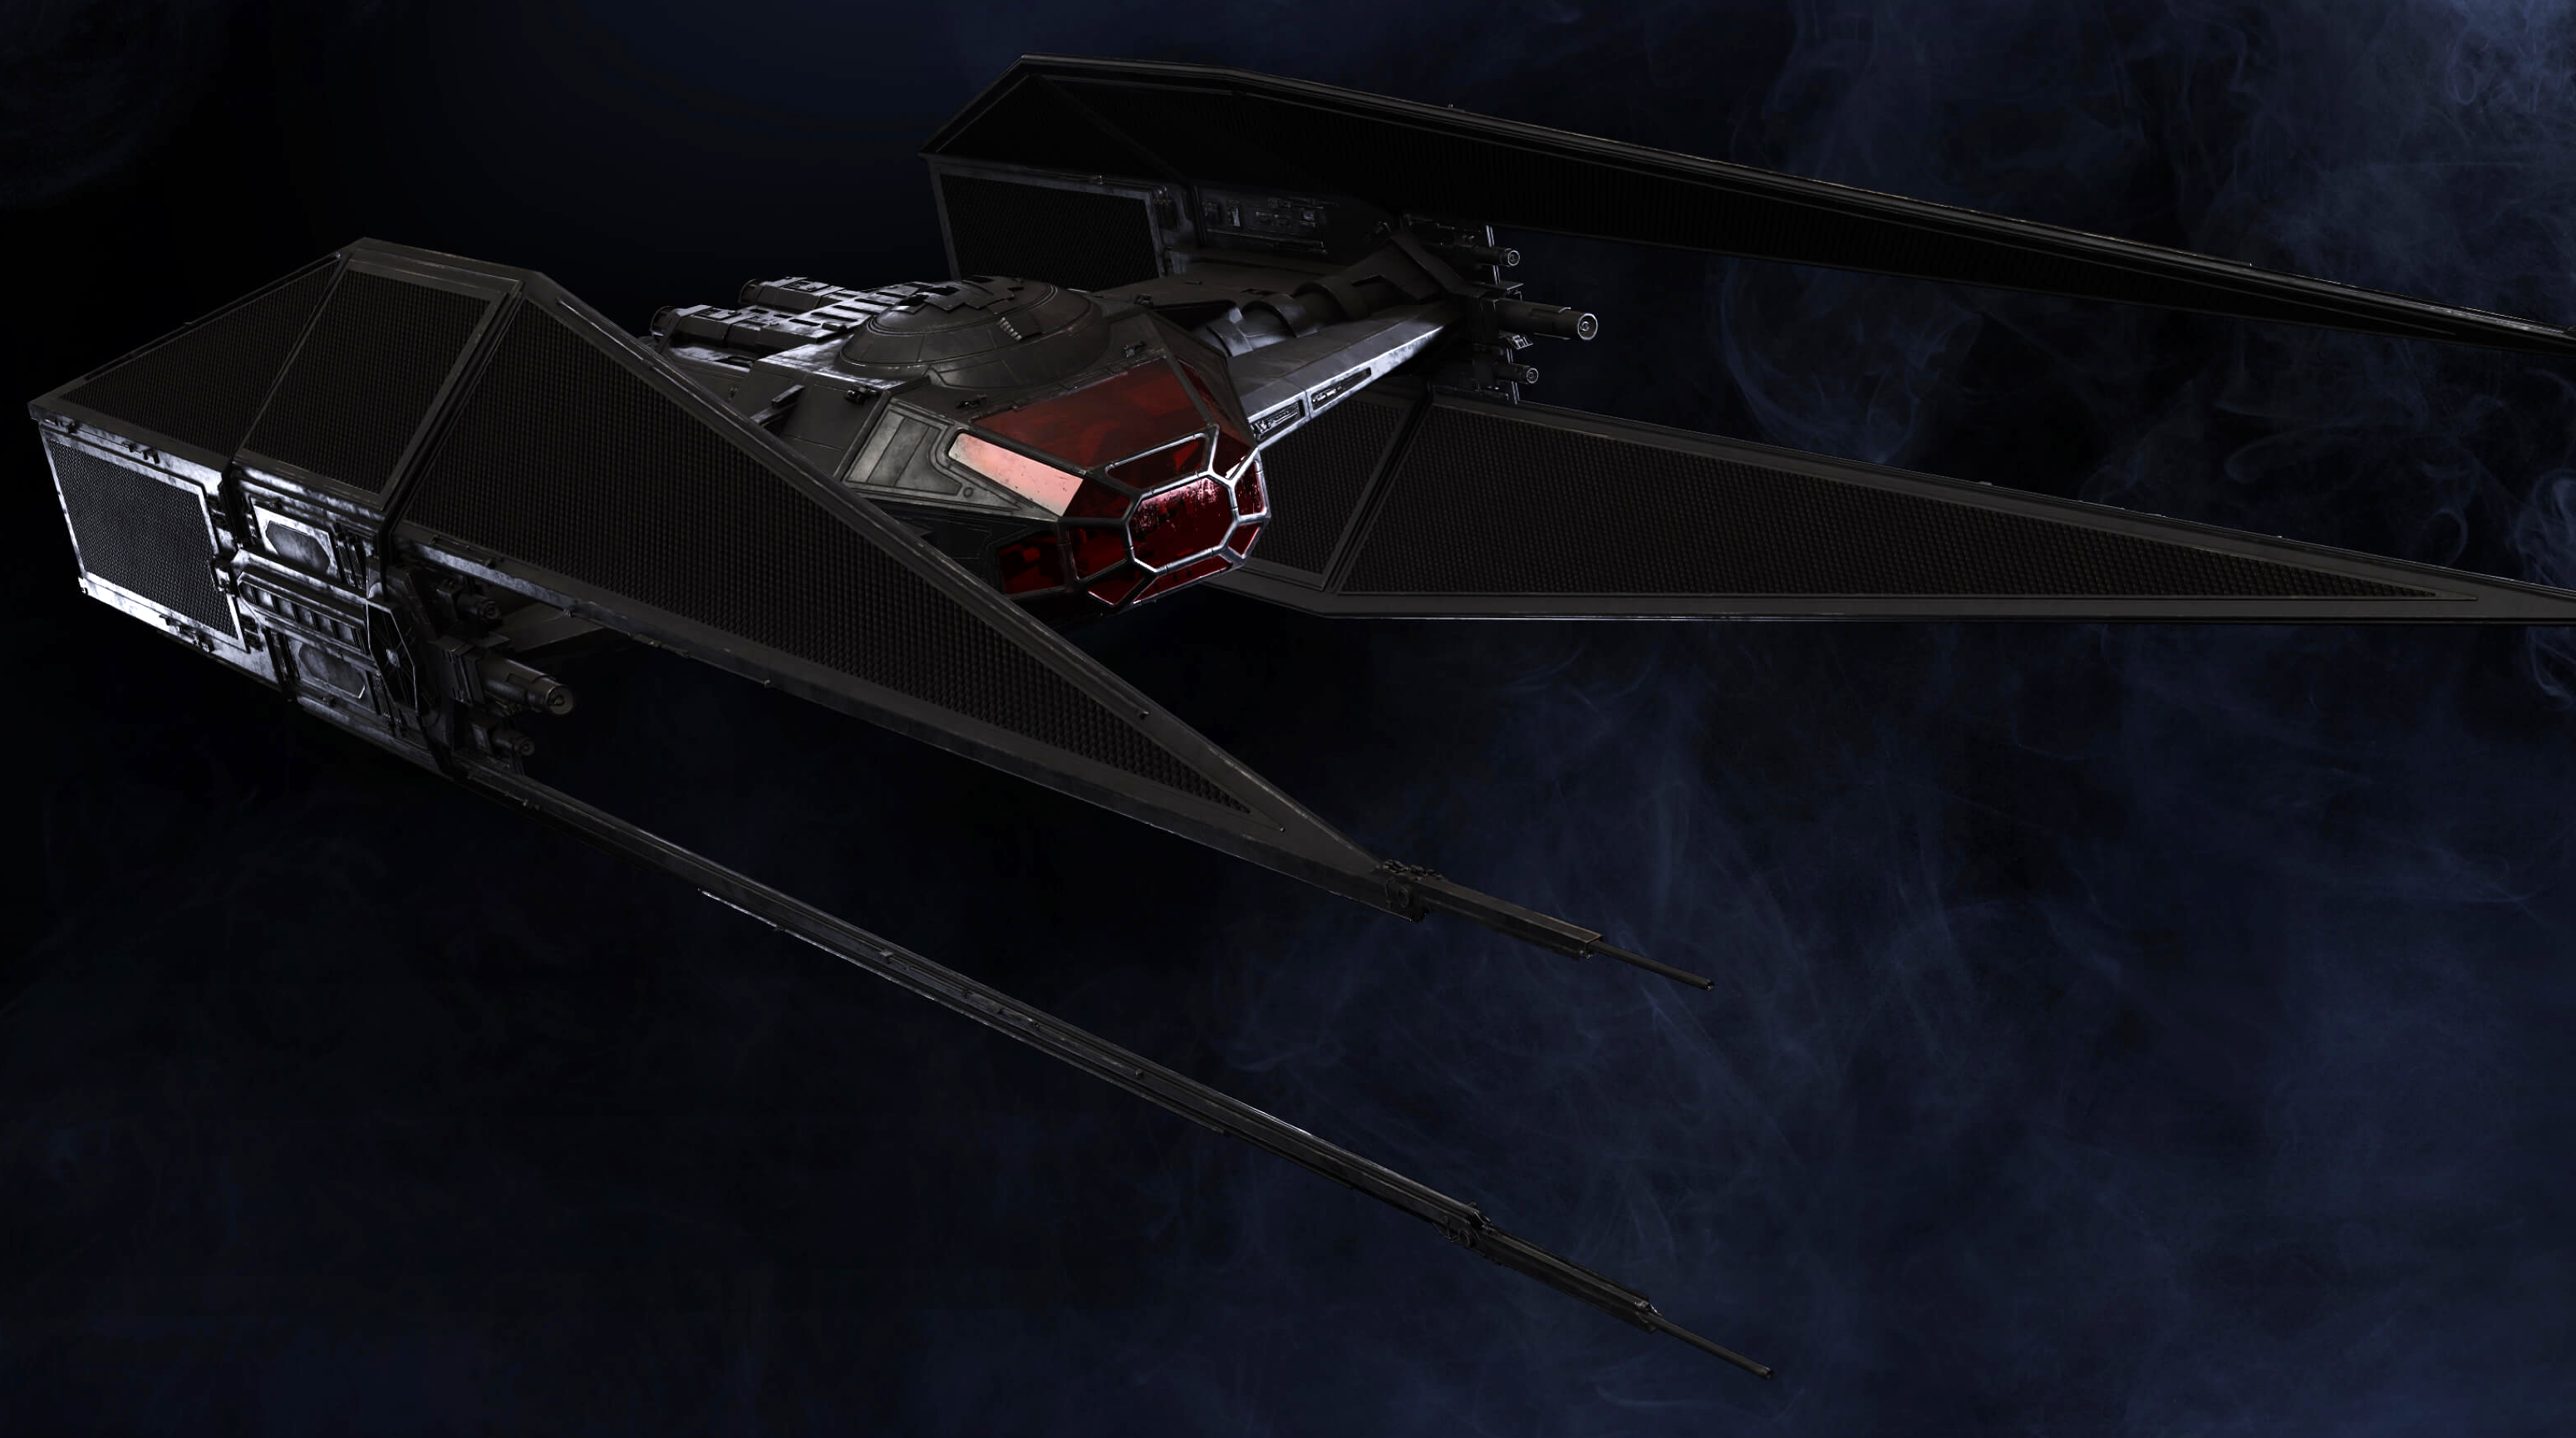 https://vignette.wikia.nocookie.net/starwars/images/e/ea/TIE_Silencer_BF2.png/revision/latest?cb=20171129235804